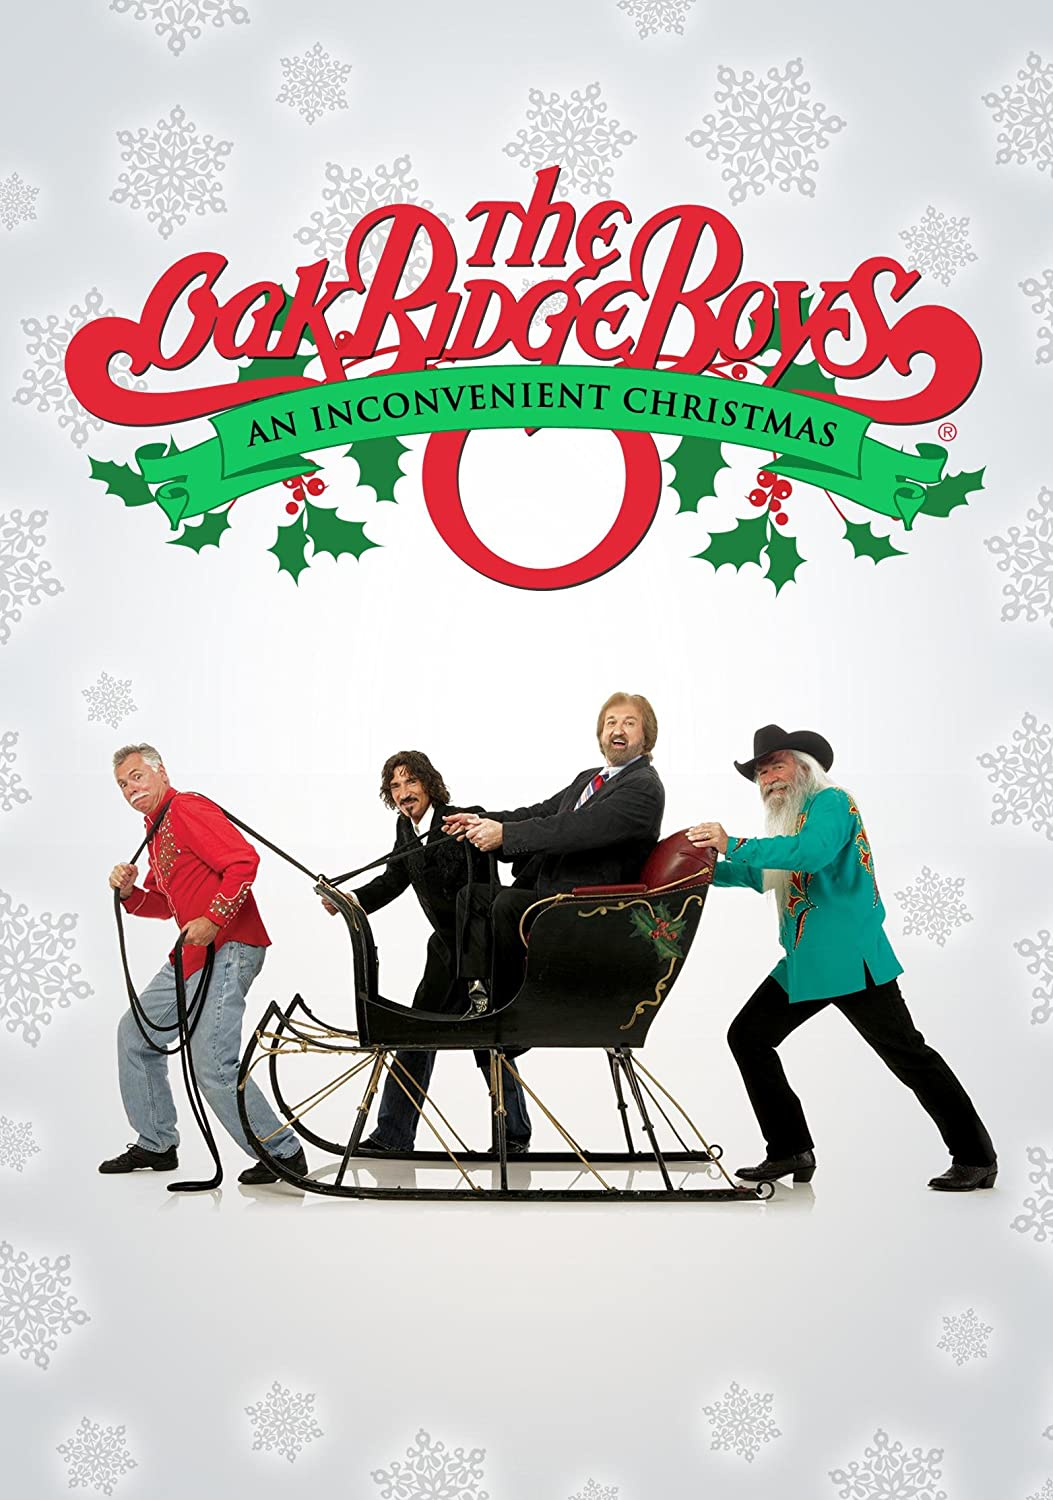 Amazon.com: The Oak Ridge Boys: An Inconvenient Christmas: The Oak ...